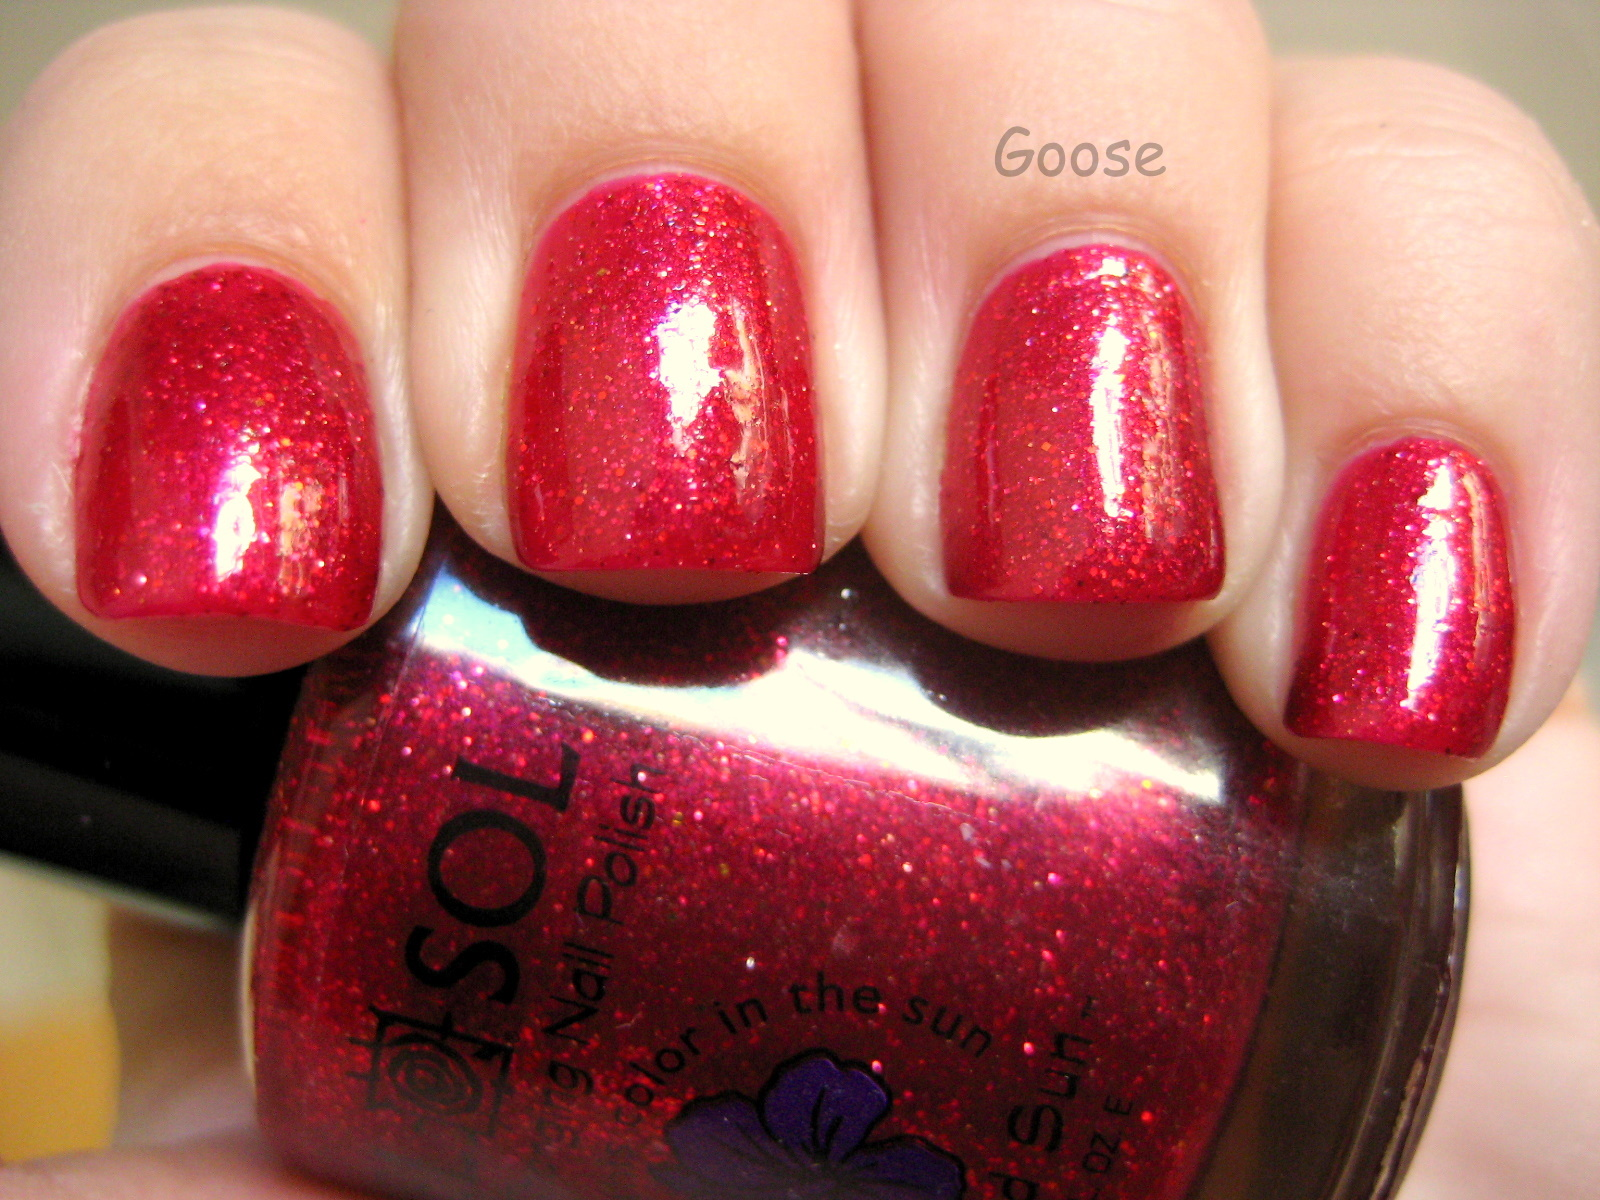 Goose\'s Glitter: Some fun Valentine\'s Day colors from Del Sol